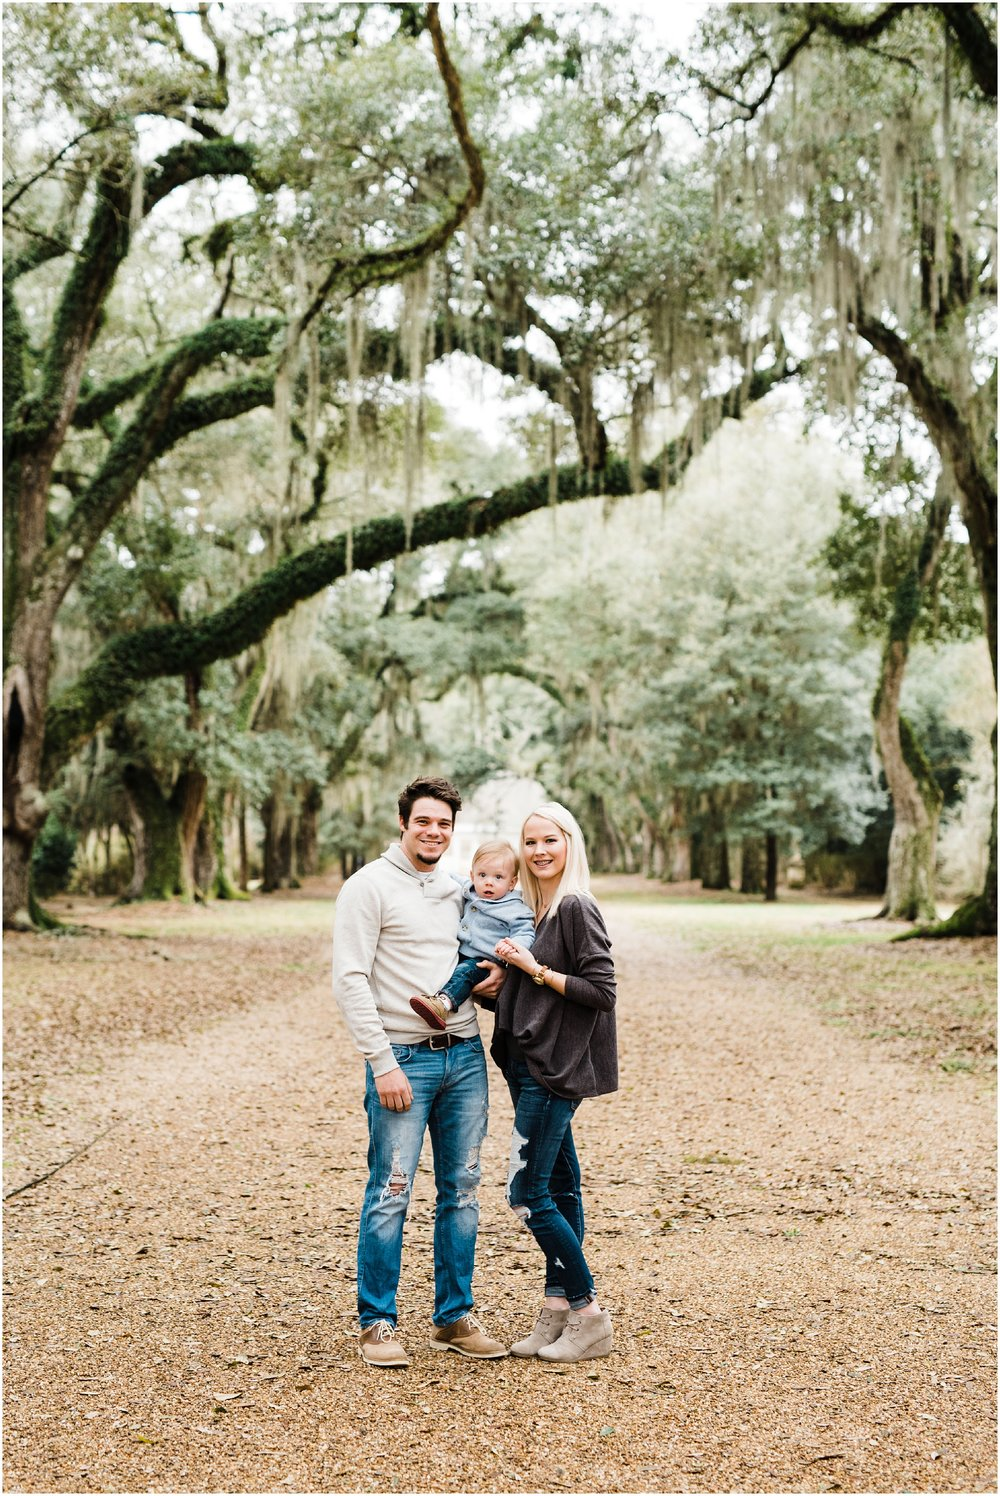 Rosedown Plantation St. Francisville Engagement and Family Session photographed by Taylor Hubbs Photography located in Baton Rouge, Louisiana.